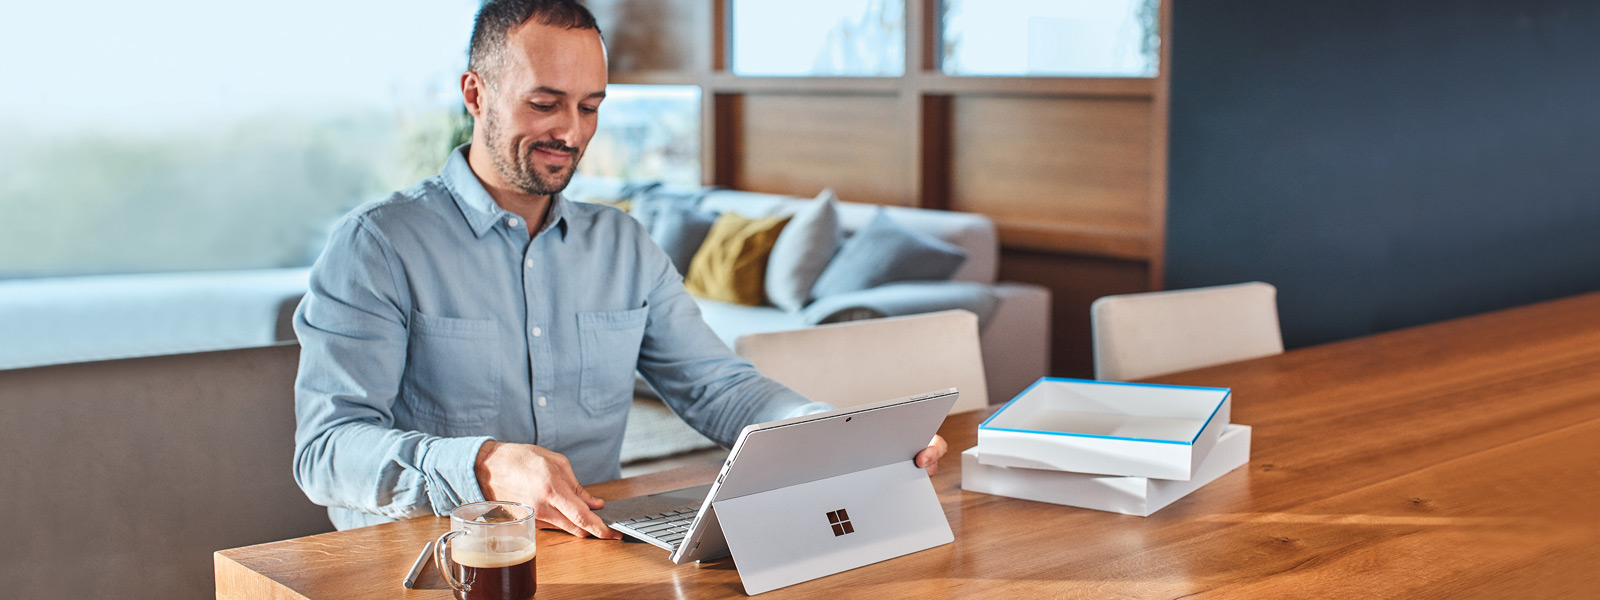 Man sitting at a table with a Surface laptop and a cup of coffee